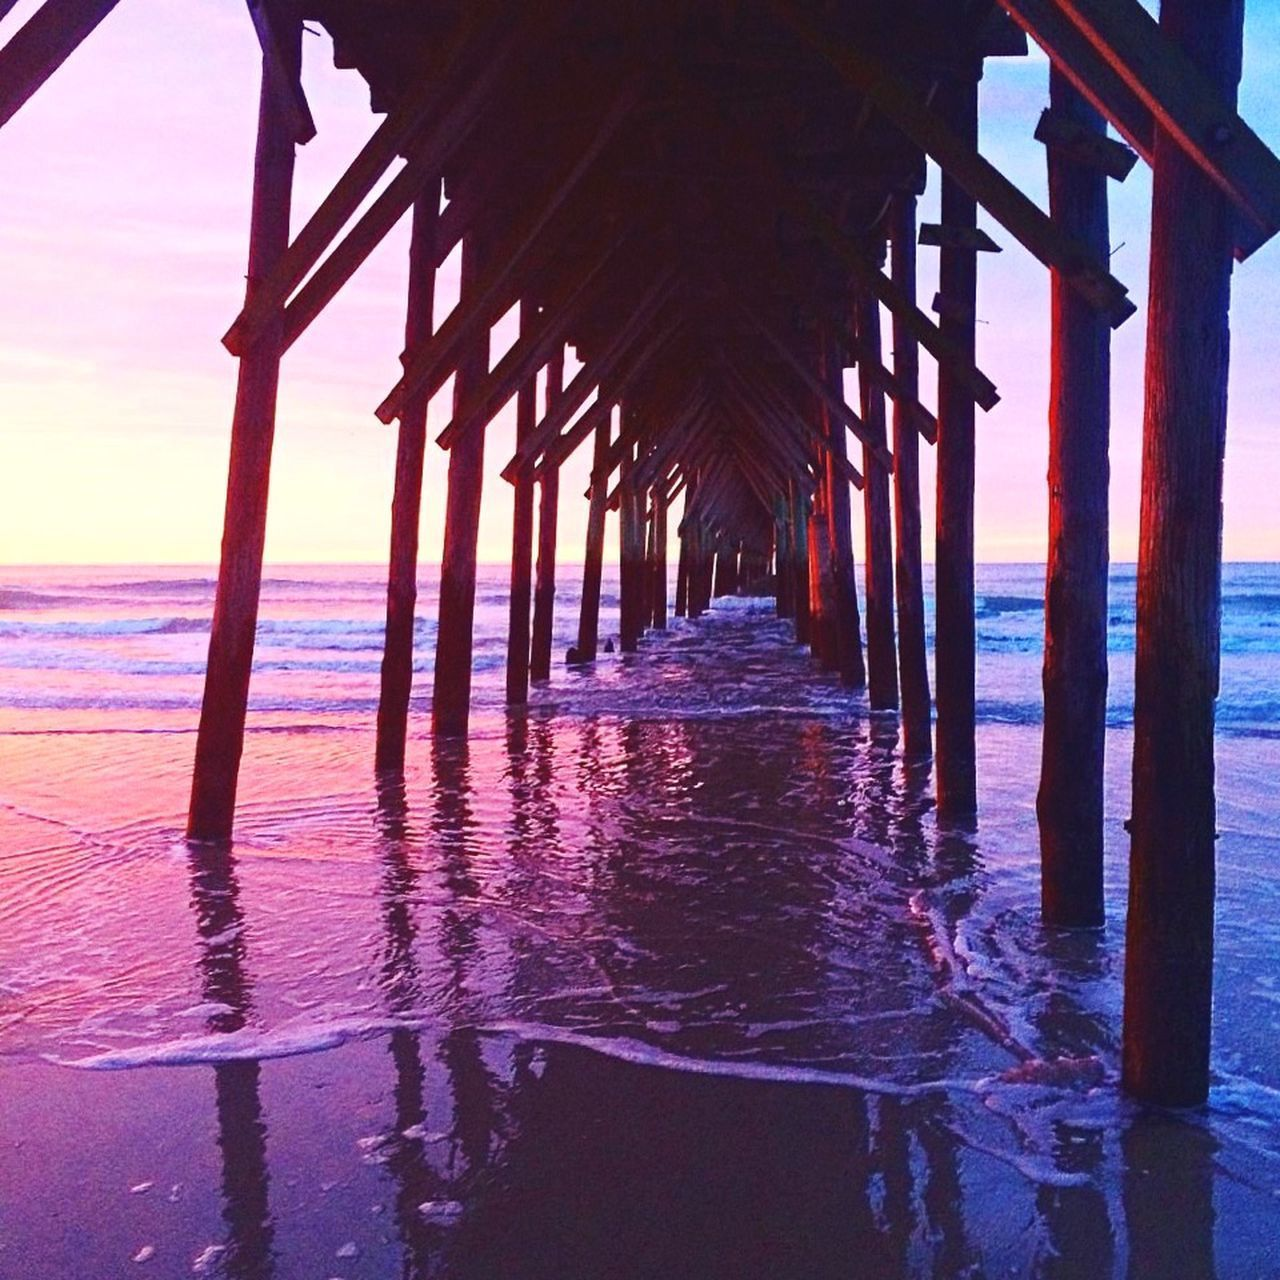 ColorMePurple OceanLovers Pier Morningsun Sunrise/Sunset Skyporn ColorMePurple its true color PinkNPurple